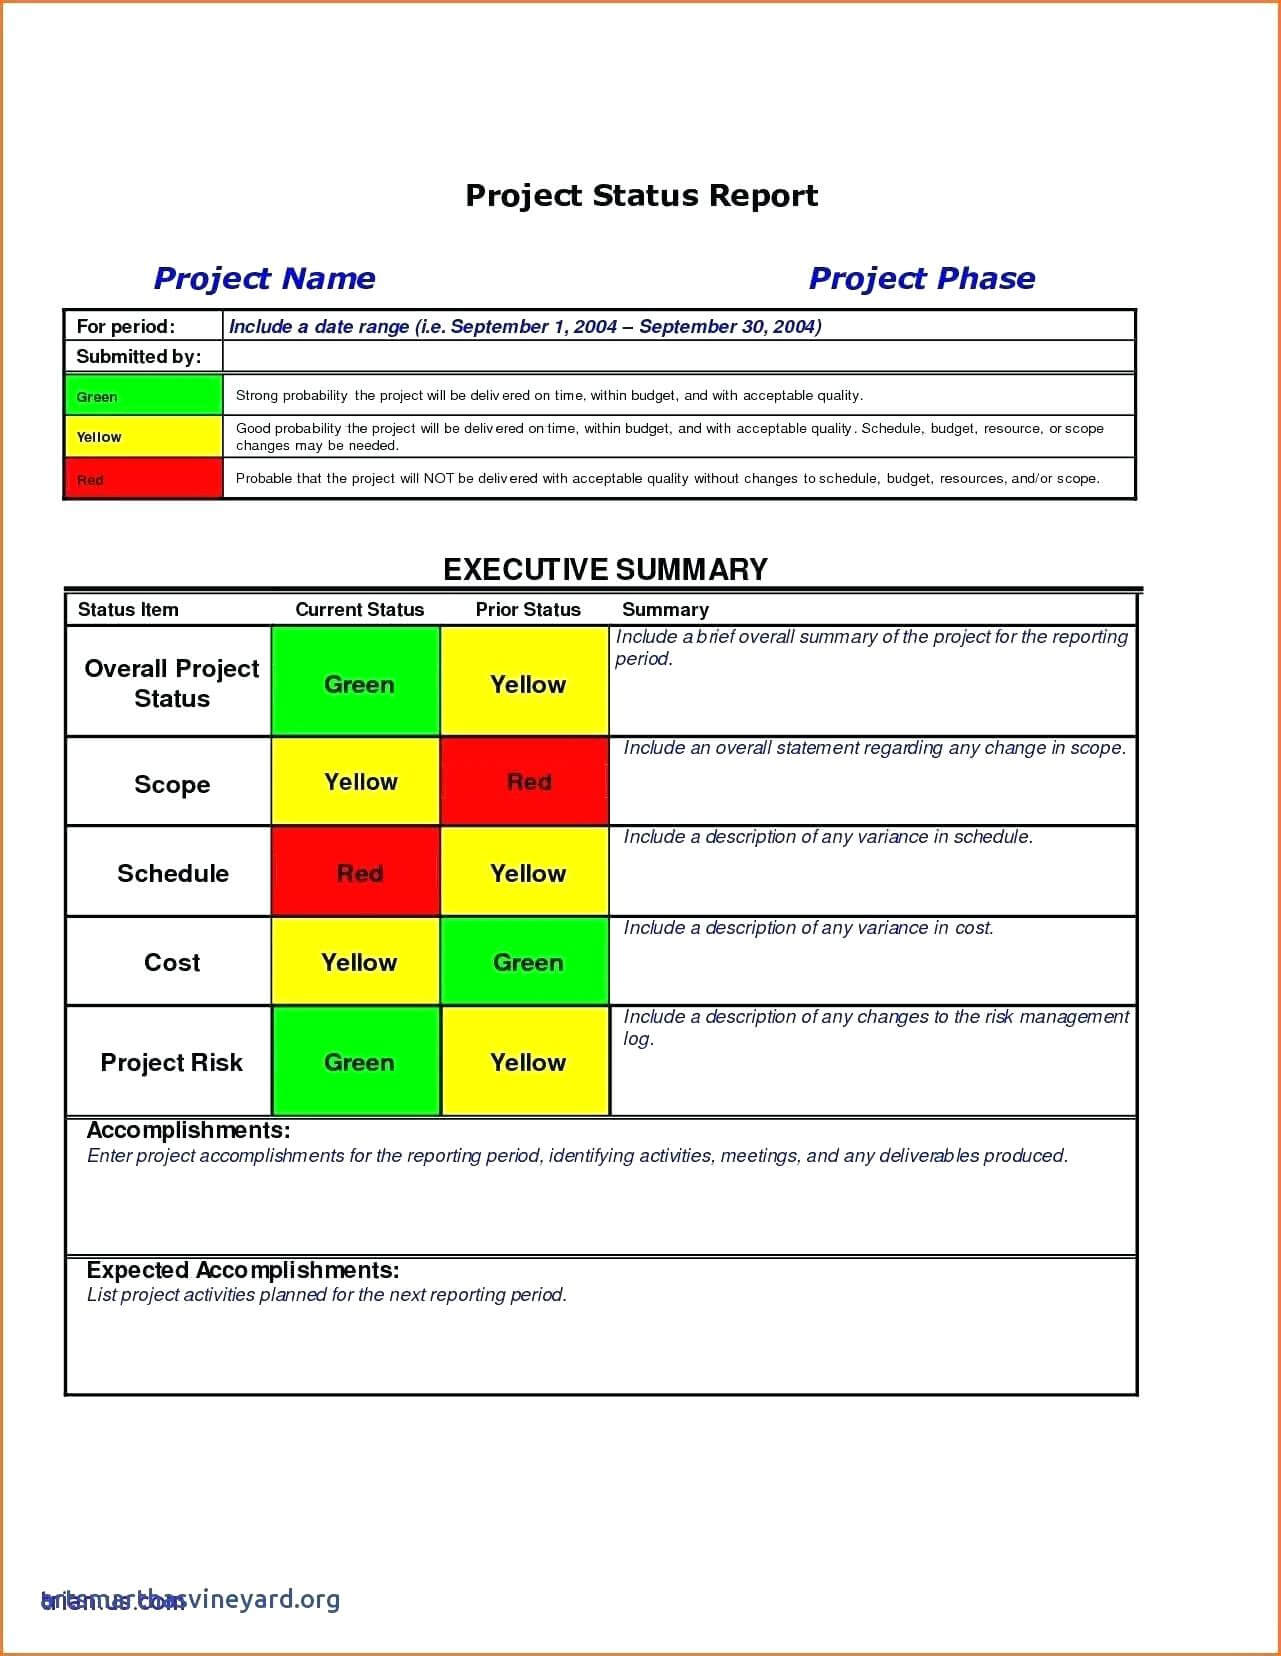 010 Template Ideas Project Management Executive Summary For Executive Summary Project Status Report Template